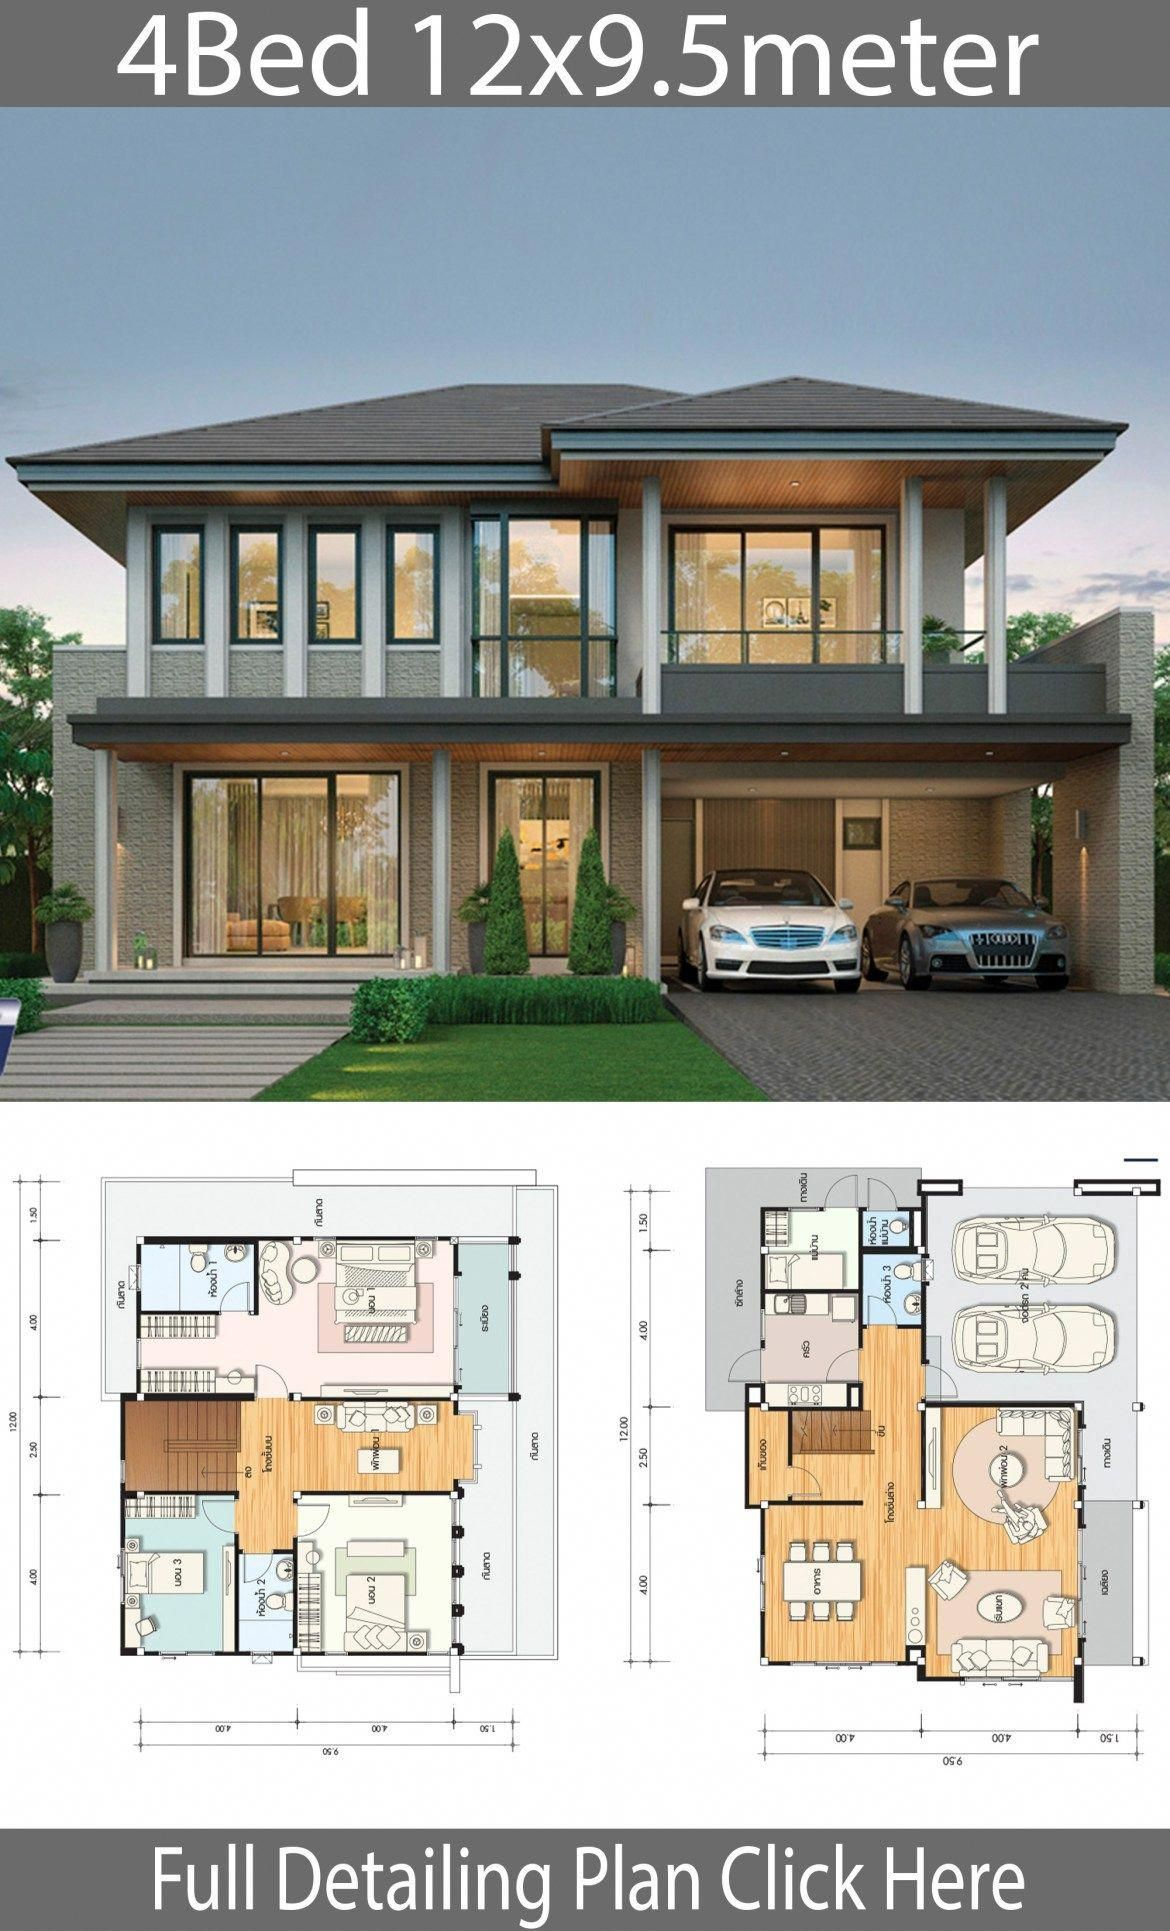 House Design Plan 12x9 5m With 4 Bedrooms Home Design With Plansearch Bedroomlayout Plansd Beautiful House Plans Architectural House Plans Model House Plan